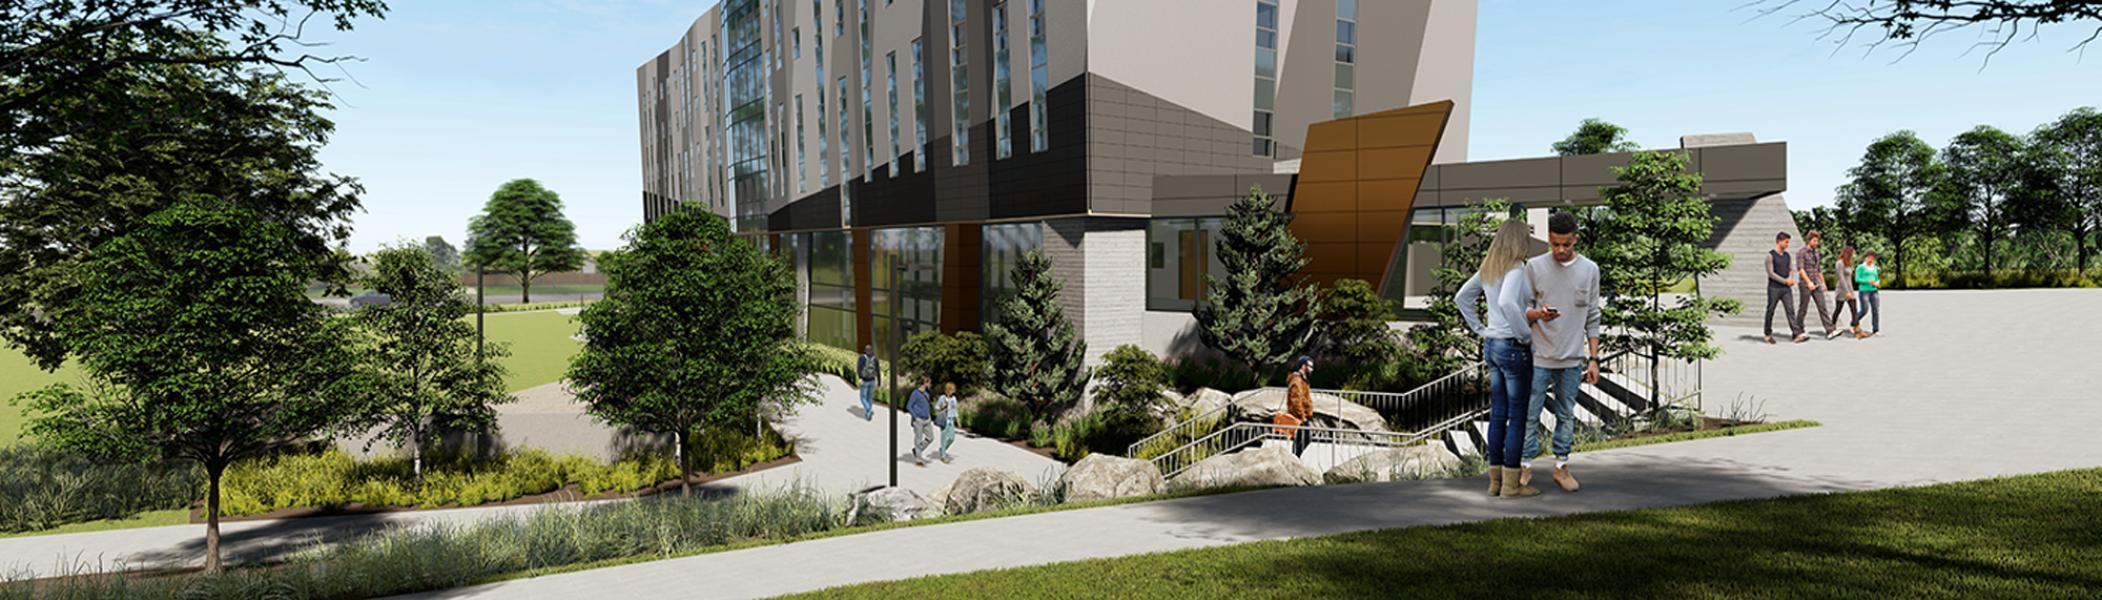 Architect rendering of the east view of the Trent University Durham GTA expansion.